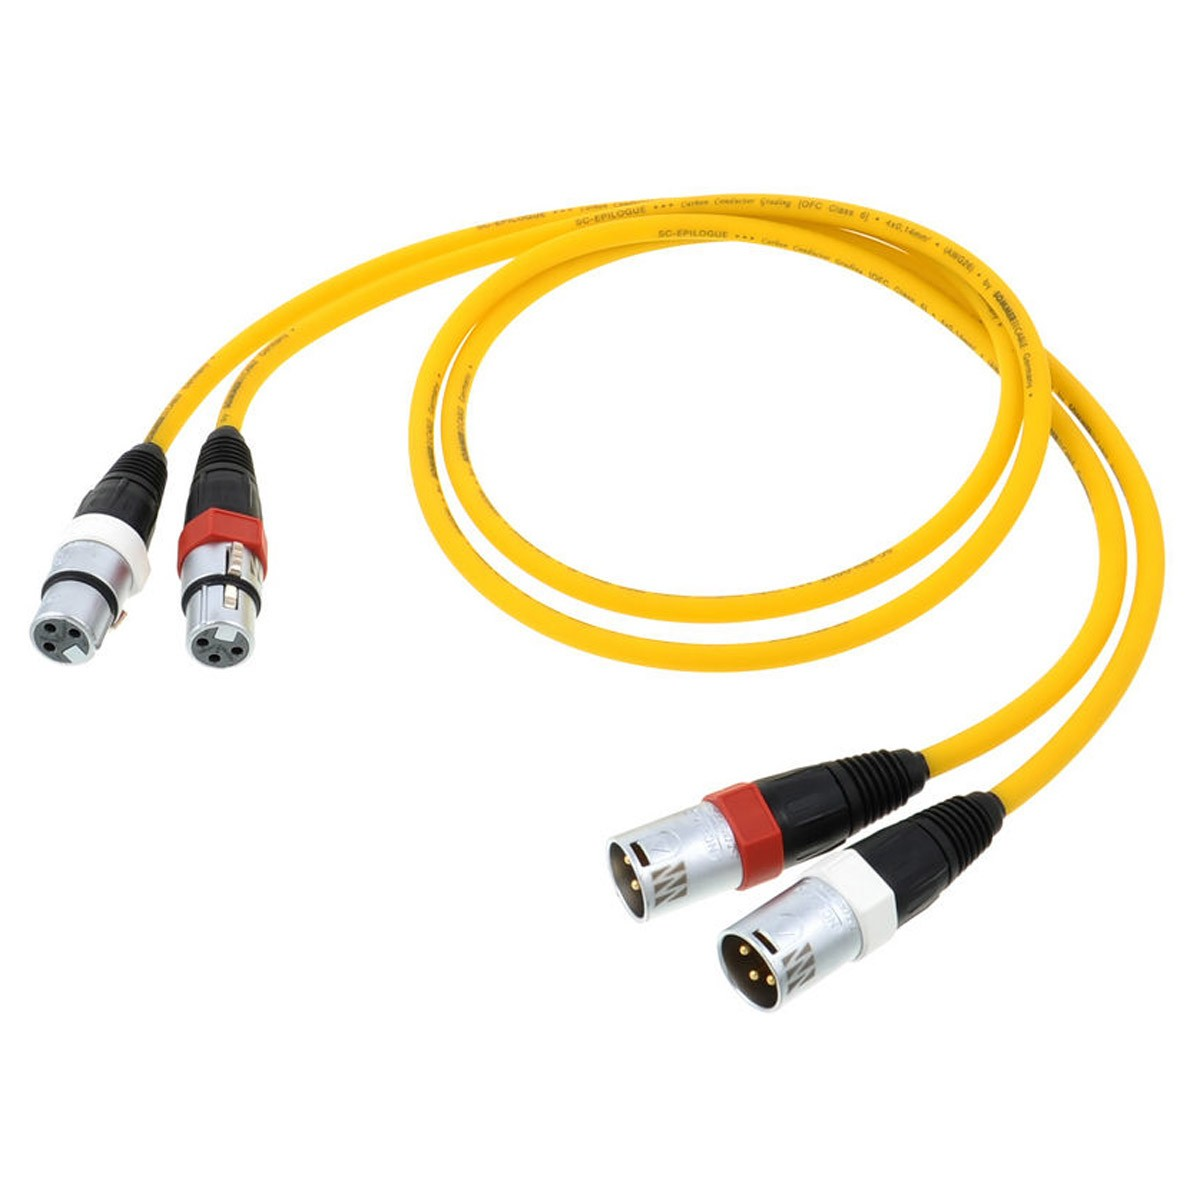 SOMMERCABLE EPILOGUE Modulation Cable Male XLR to Female XLR 1m (Pair)